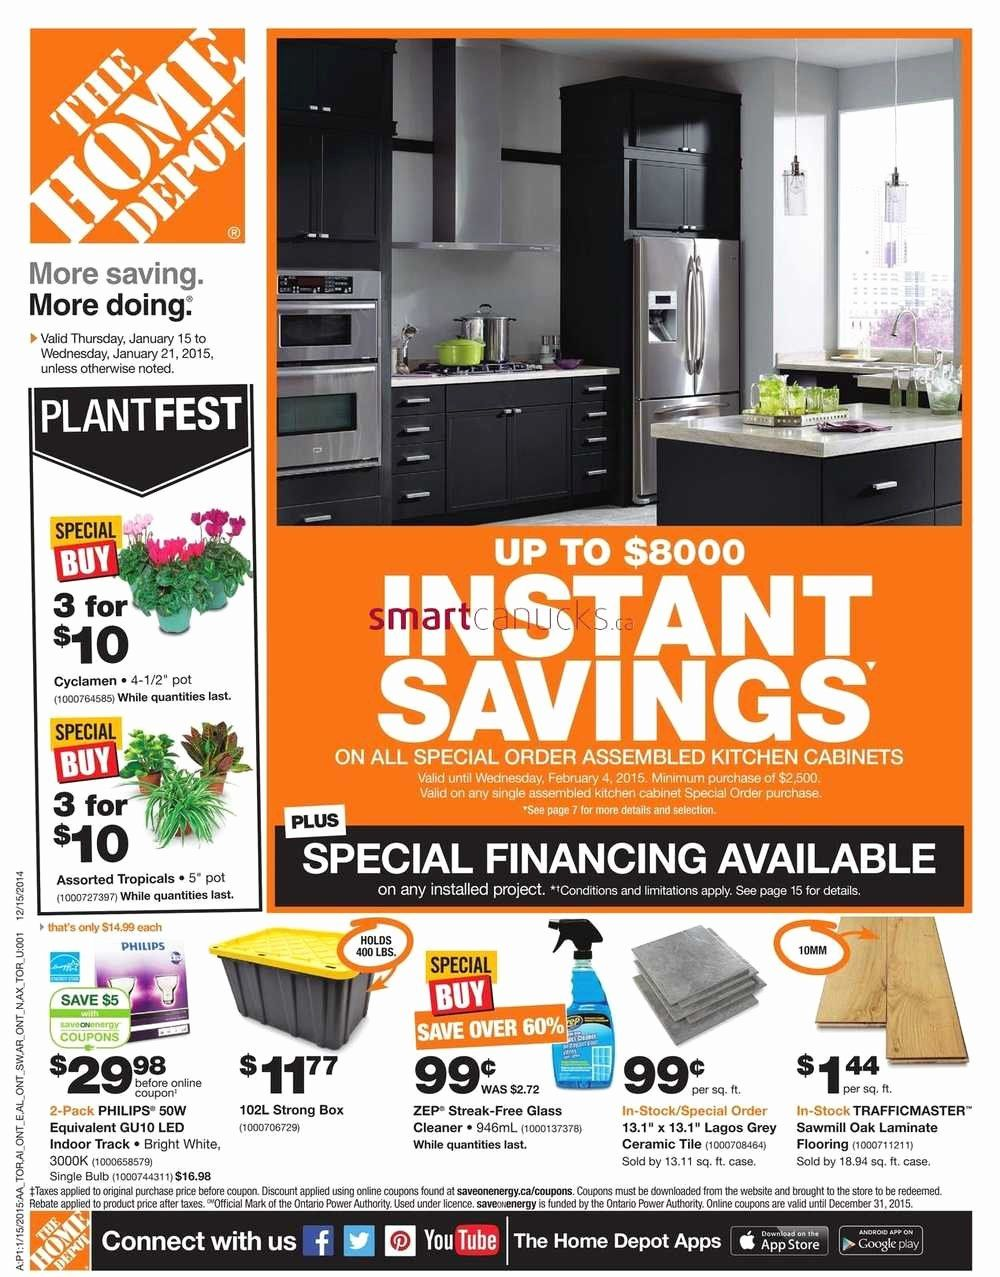 Home Depot Interior Design Android Lovely Home Depot On Flyer January 15 To 21 In 2020 Home Depot Hours Home Depot Interior Design